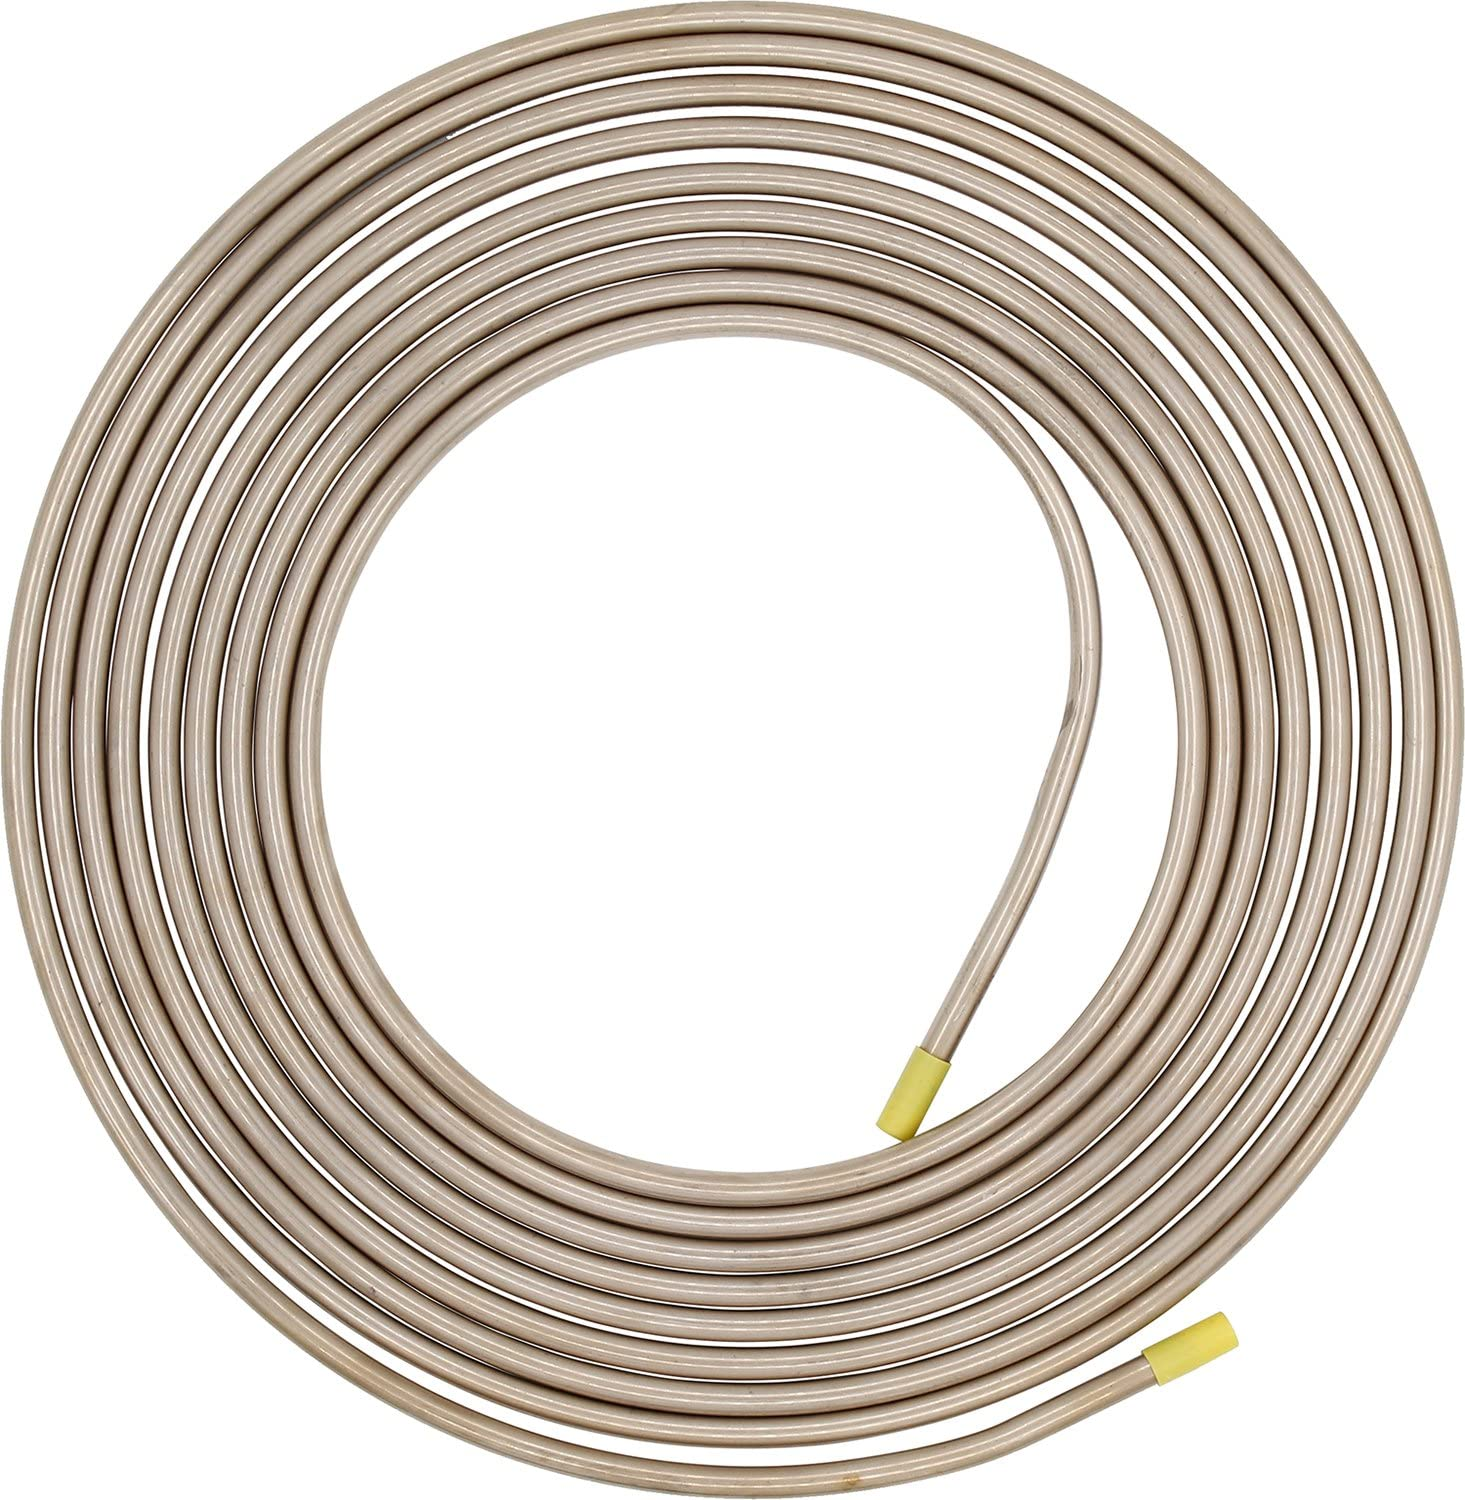 Plews /& Edelmann Edelmann 3300CN 3//16 Copperhead Brake Line-25 Foot Coil